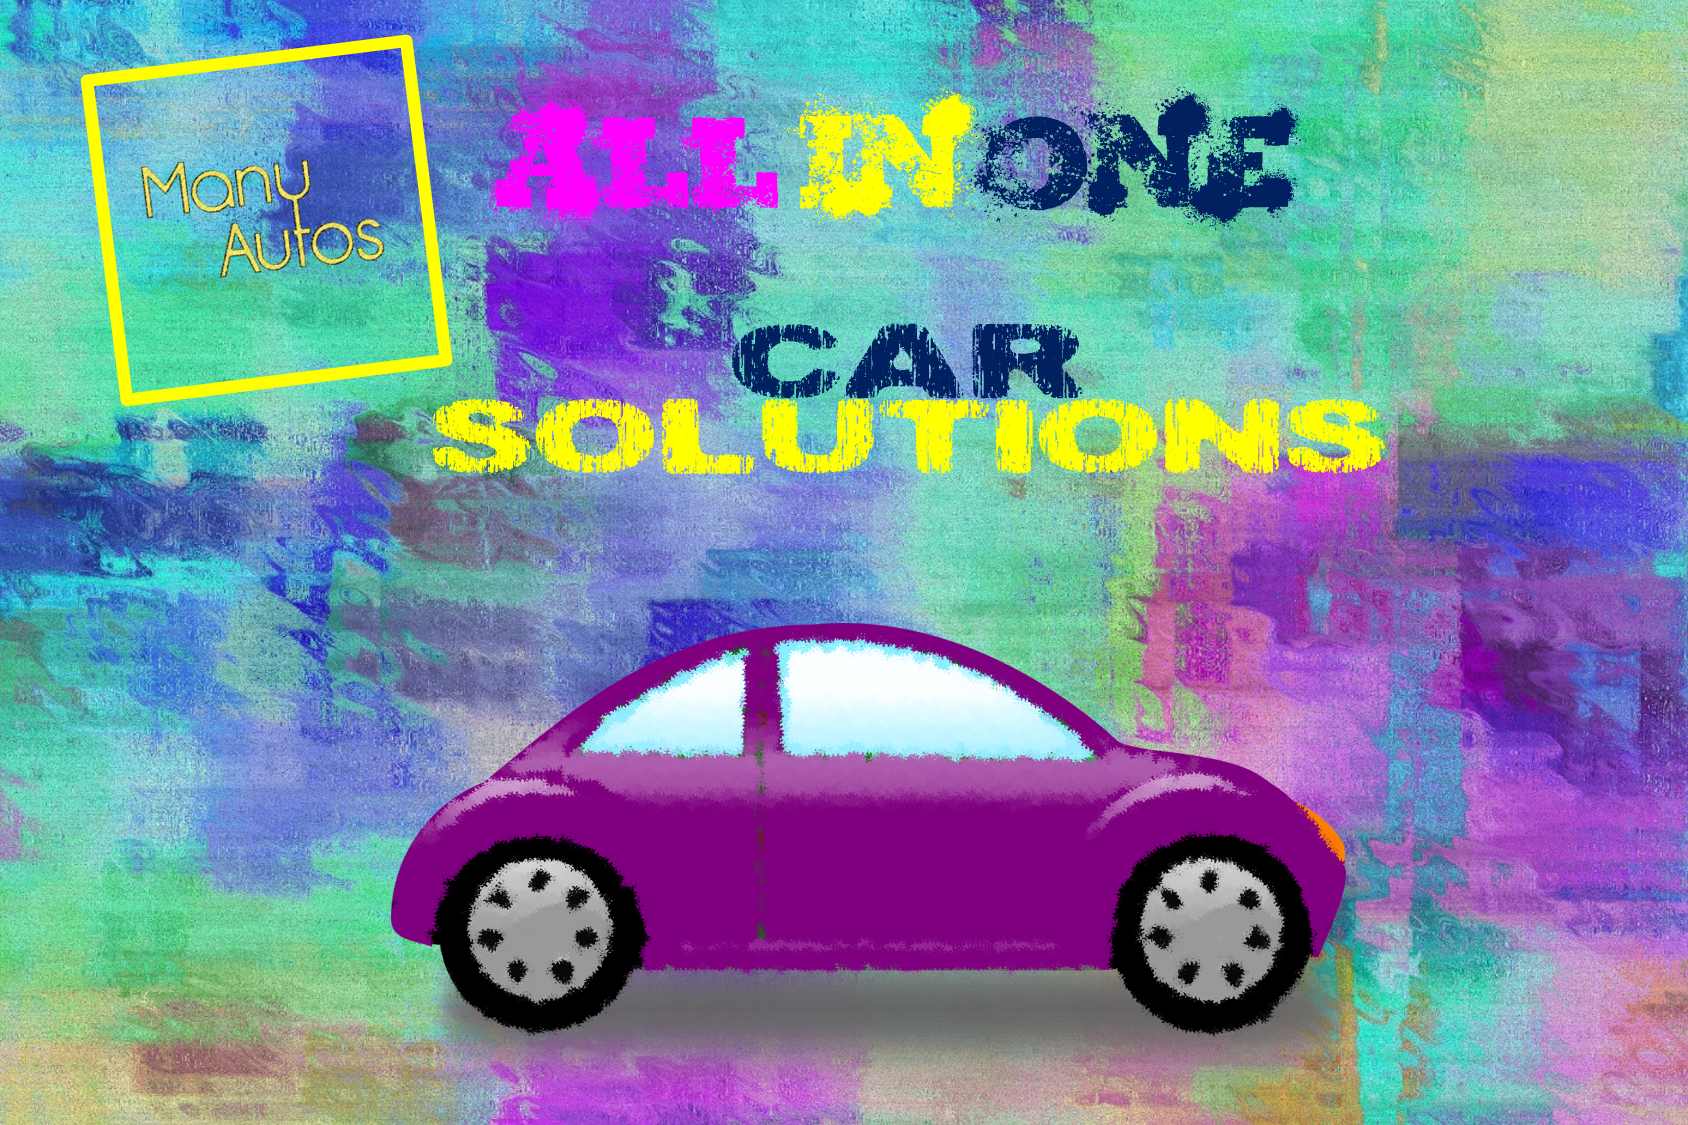 Many Autos Offers Car Repair And Servicing For All Makes And